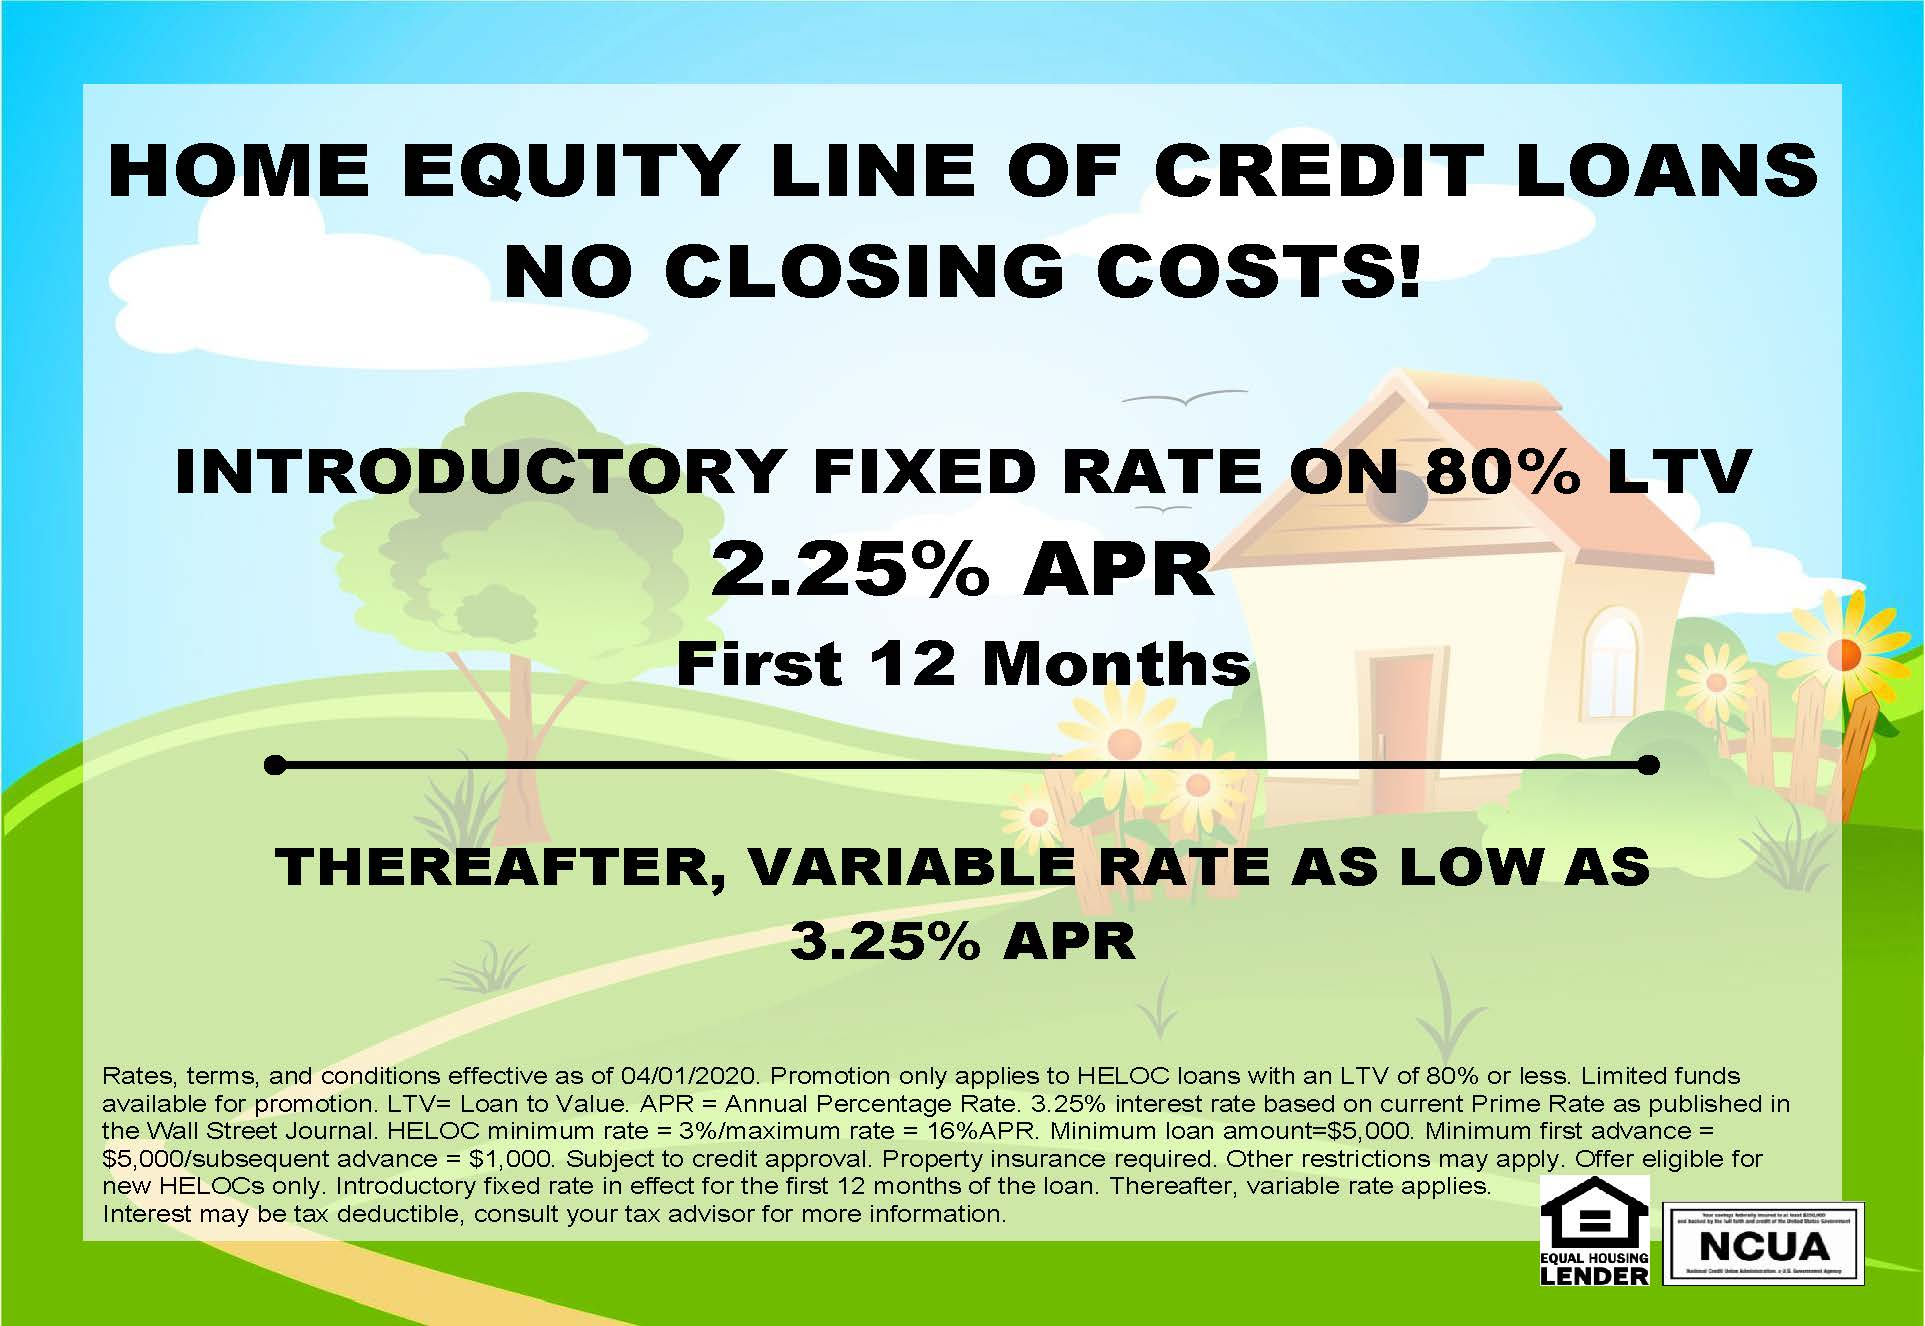 Contact us about our introductory rate for Home Equity Line of Credit Loans!